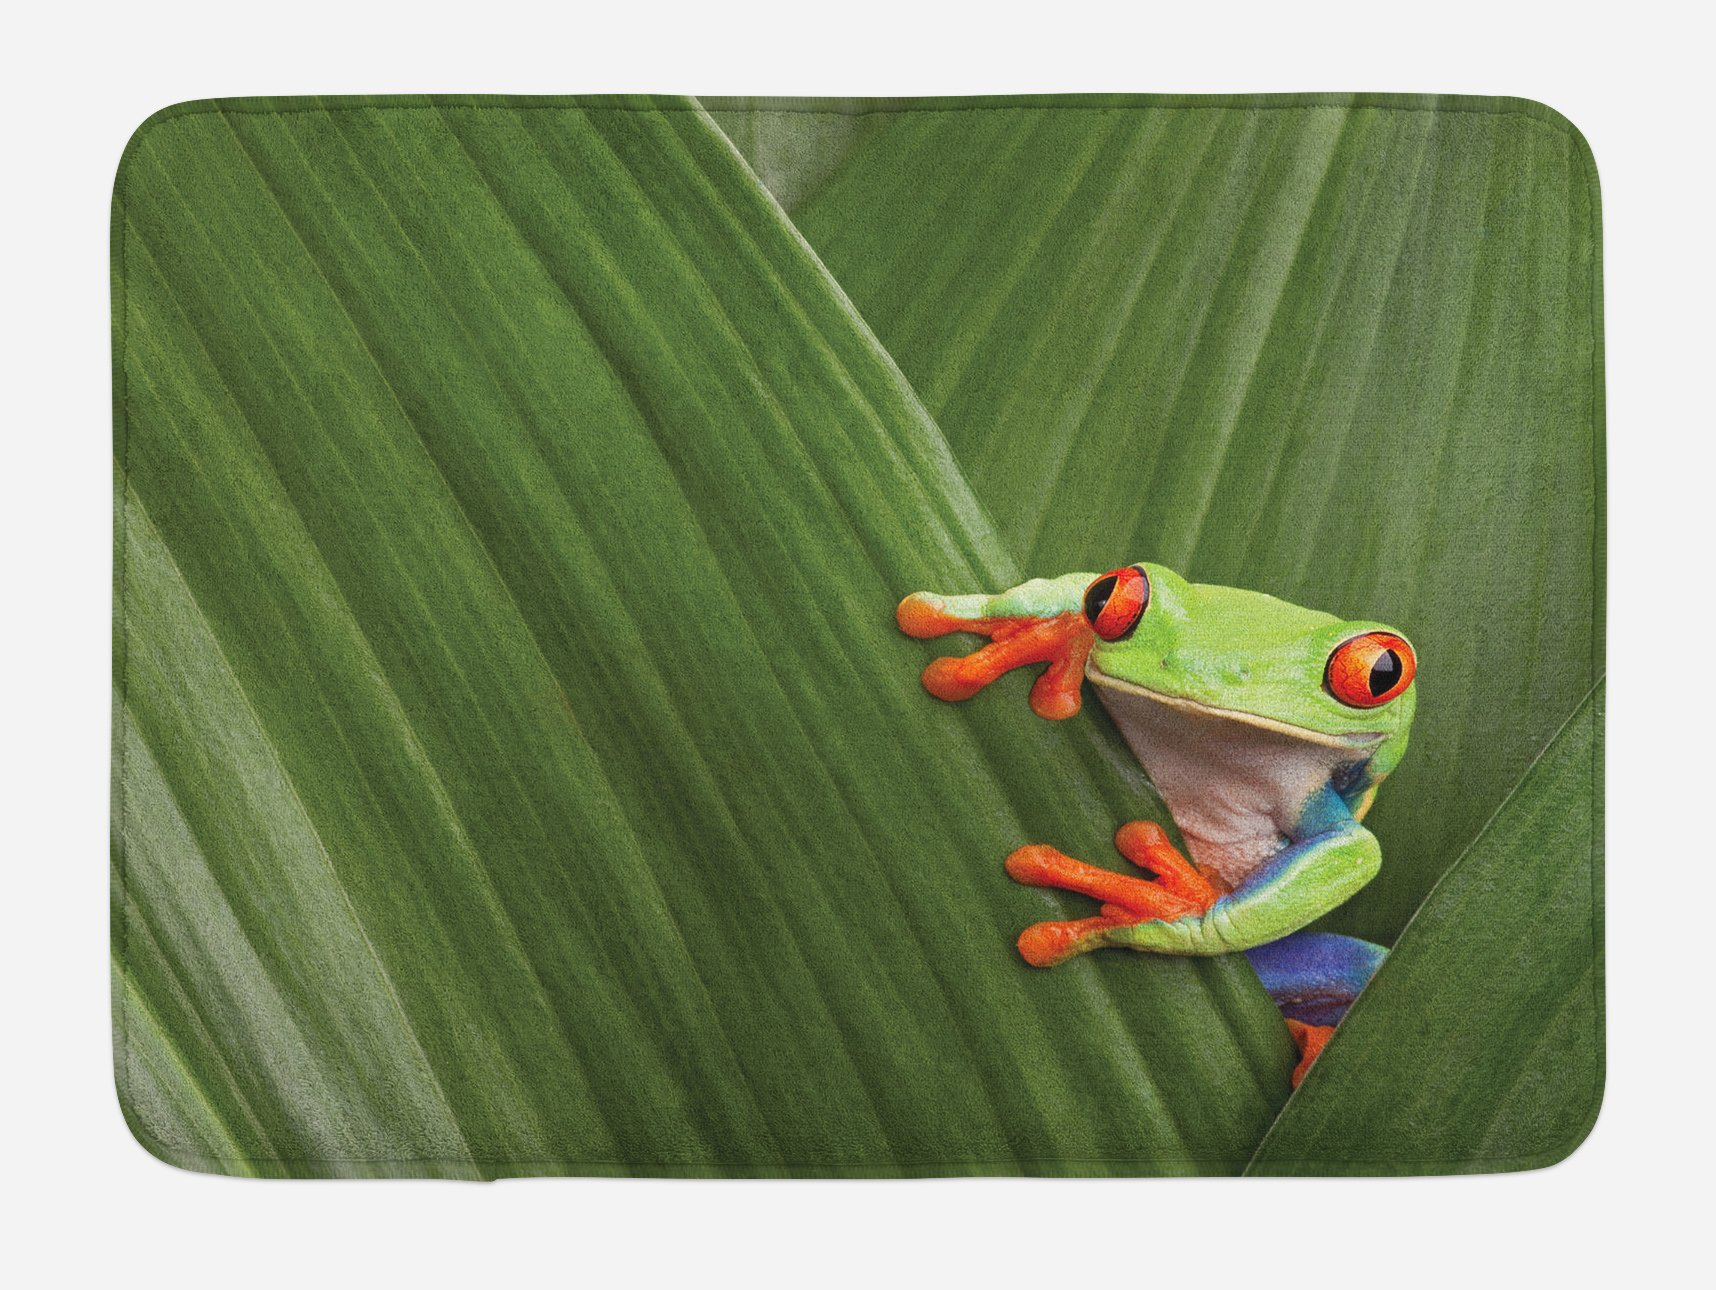 Lunarable Animal Bath Mat, Red Eyed Tree Frog Hiding in Exotic Macro Leaf in Costa Rica Rainforest Tropical Nature, Plush Bathroom Decor Mat with Non Slip Backing, 29.5 W X 17.5 W Inches, Green